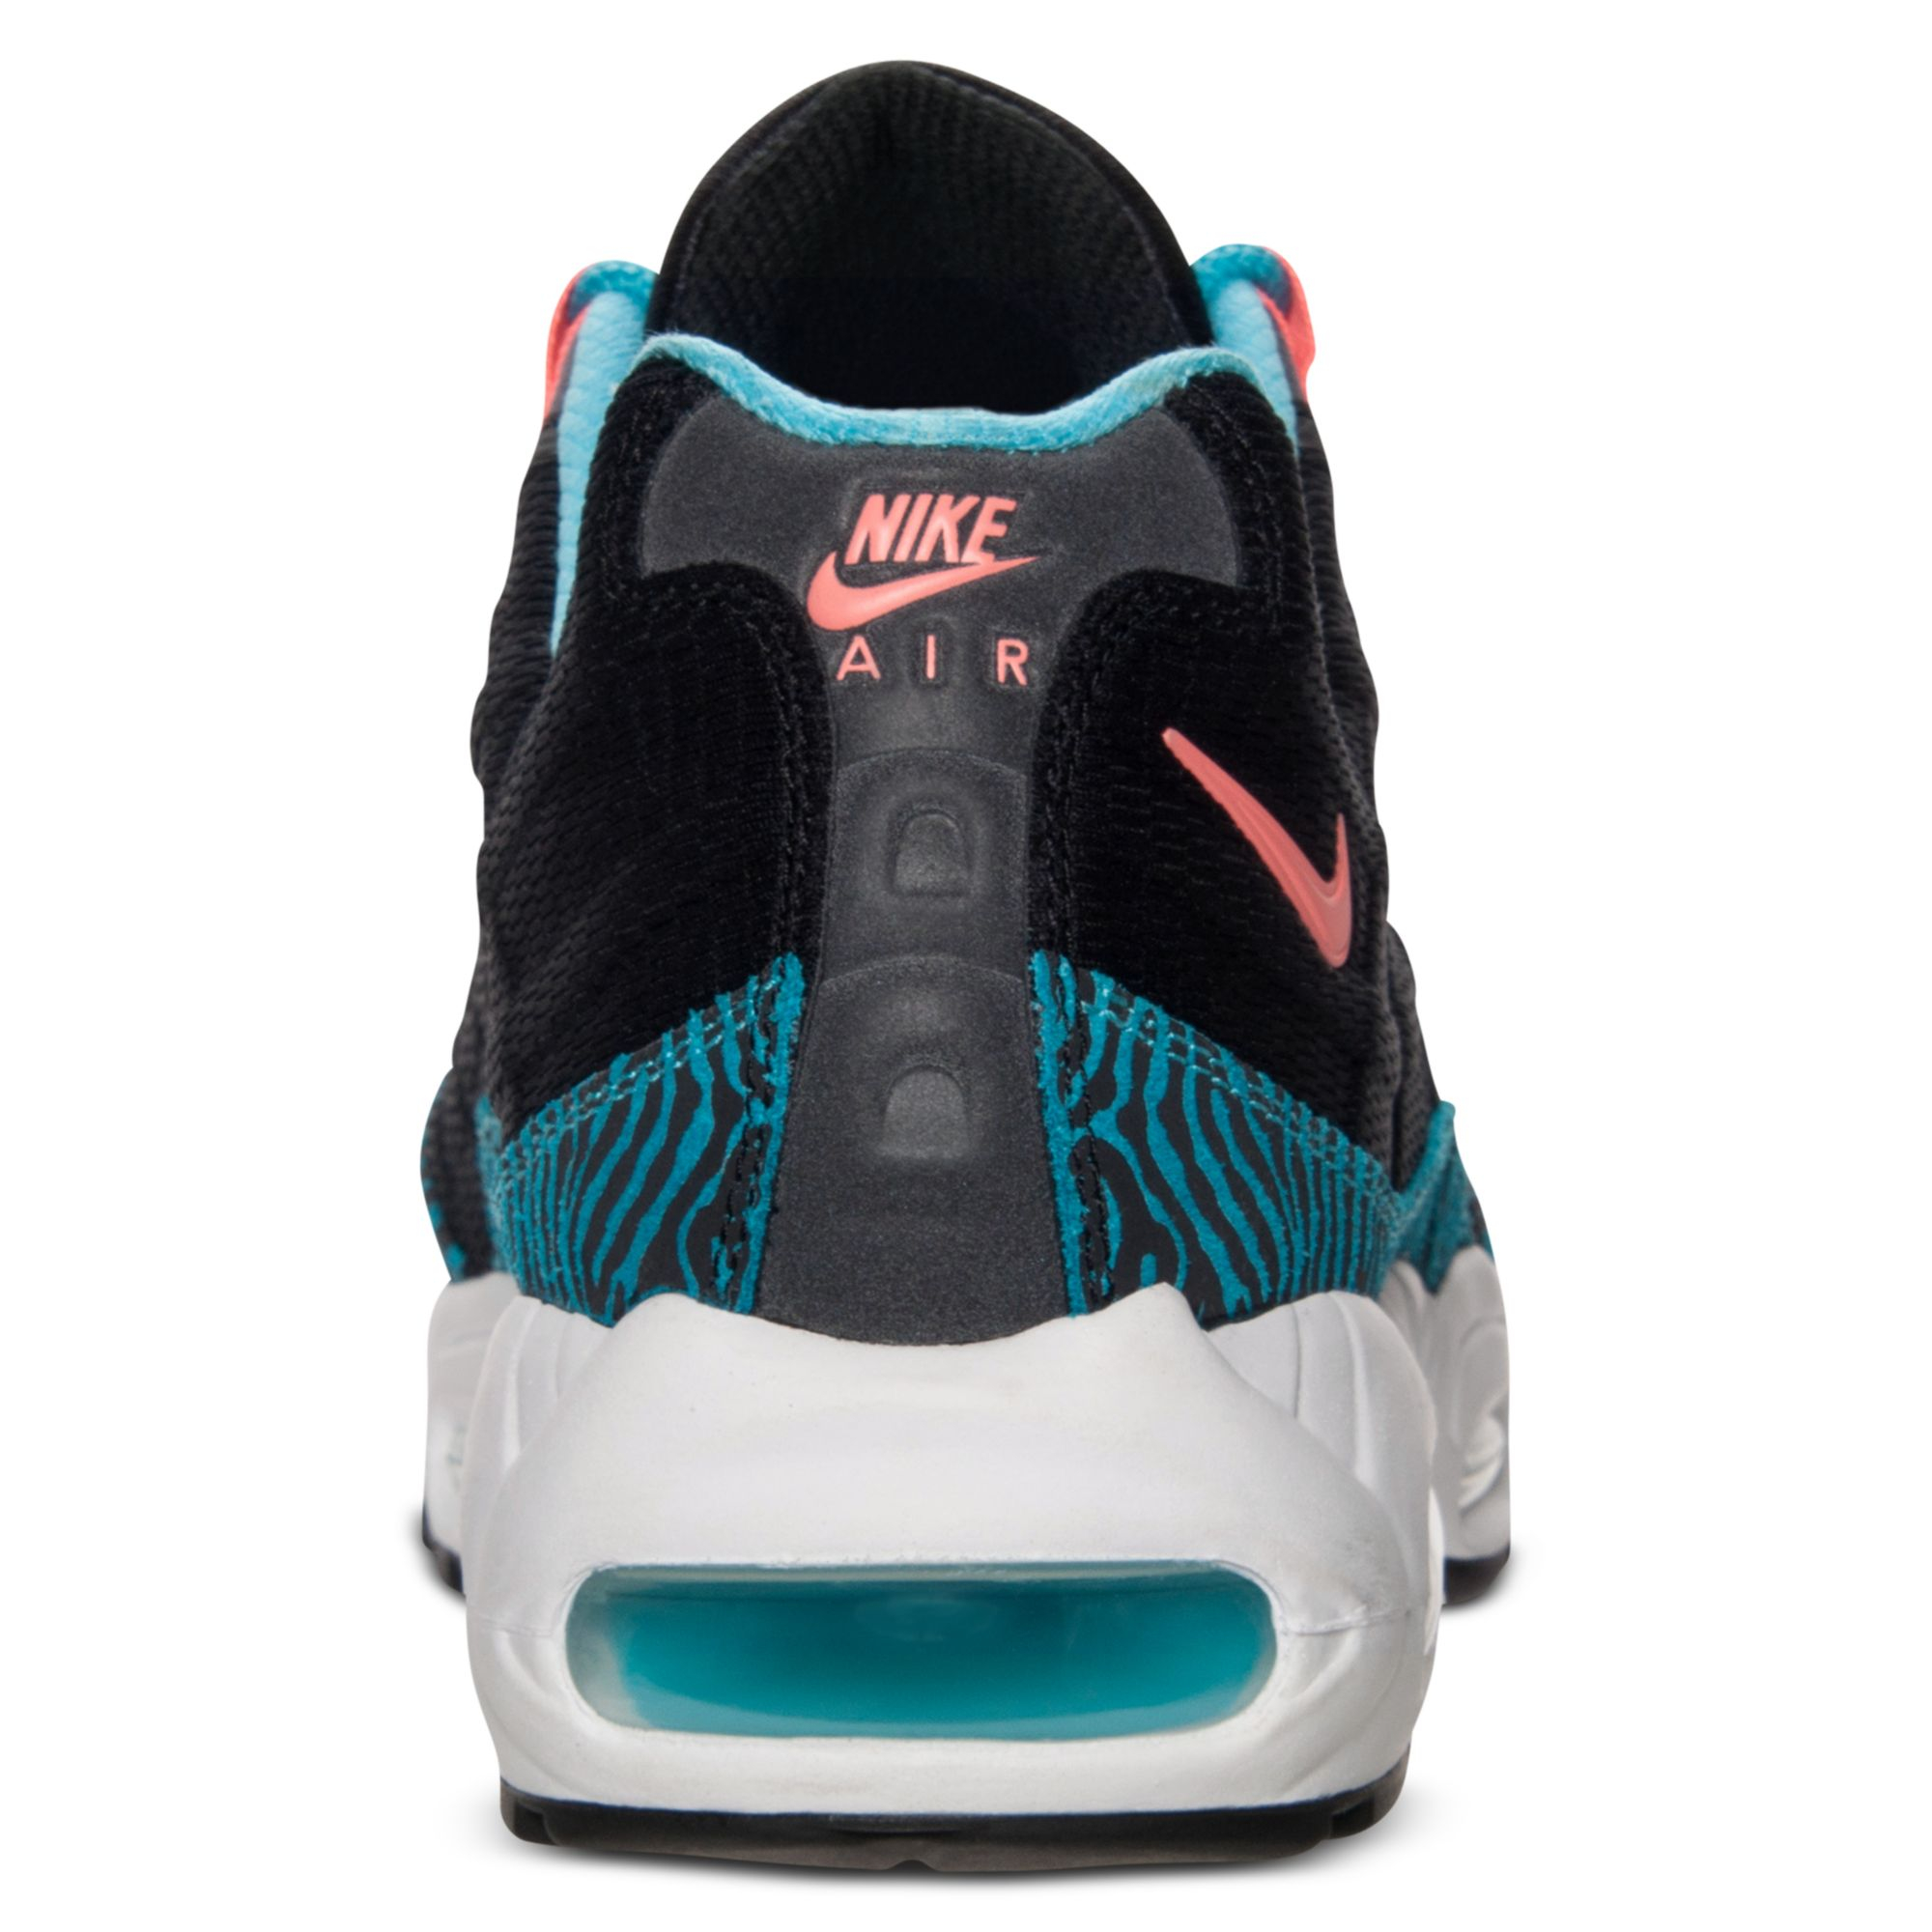 hot sale online 4f1db e203b ... norway lyst nike mens air max 95 premium tape running sneakers from  927b4 be628